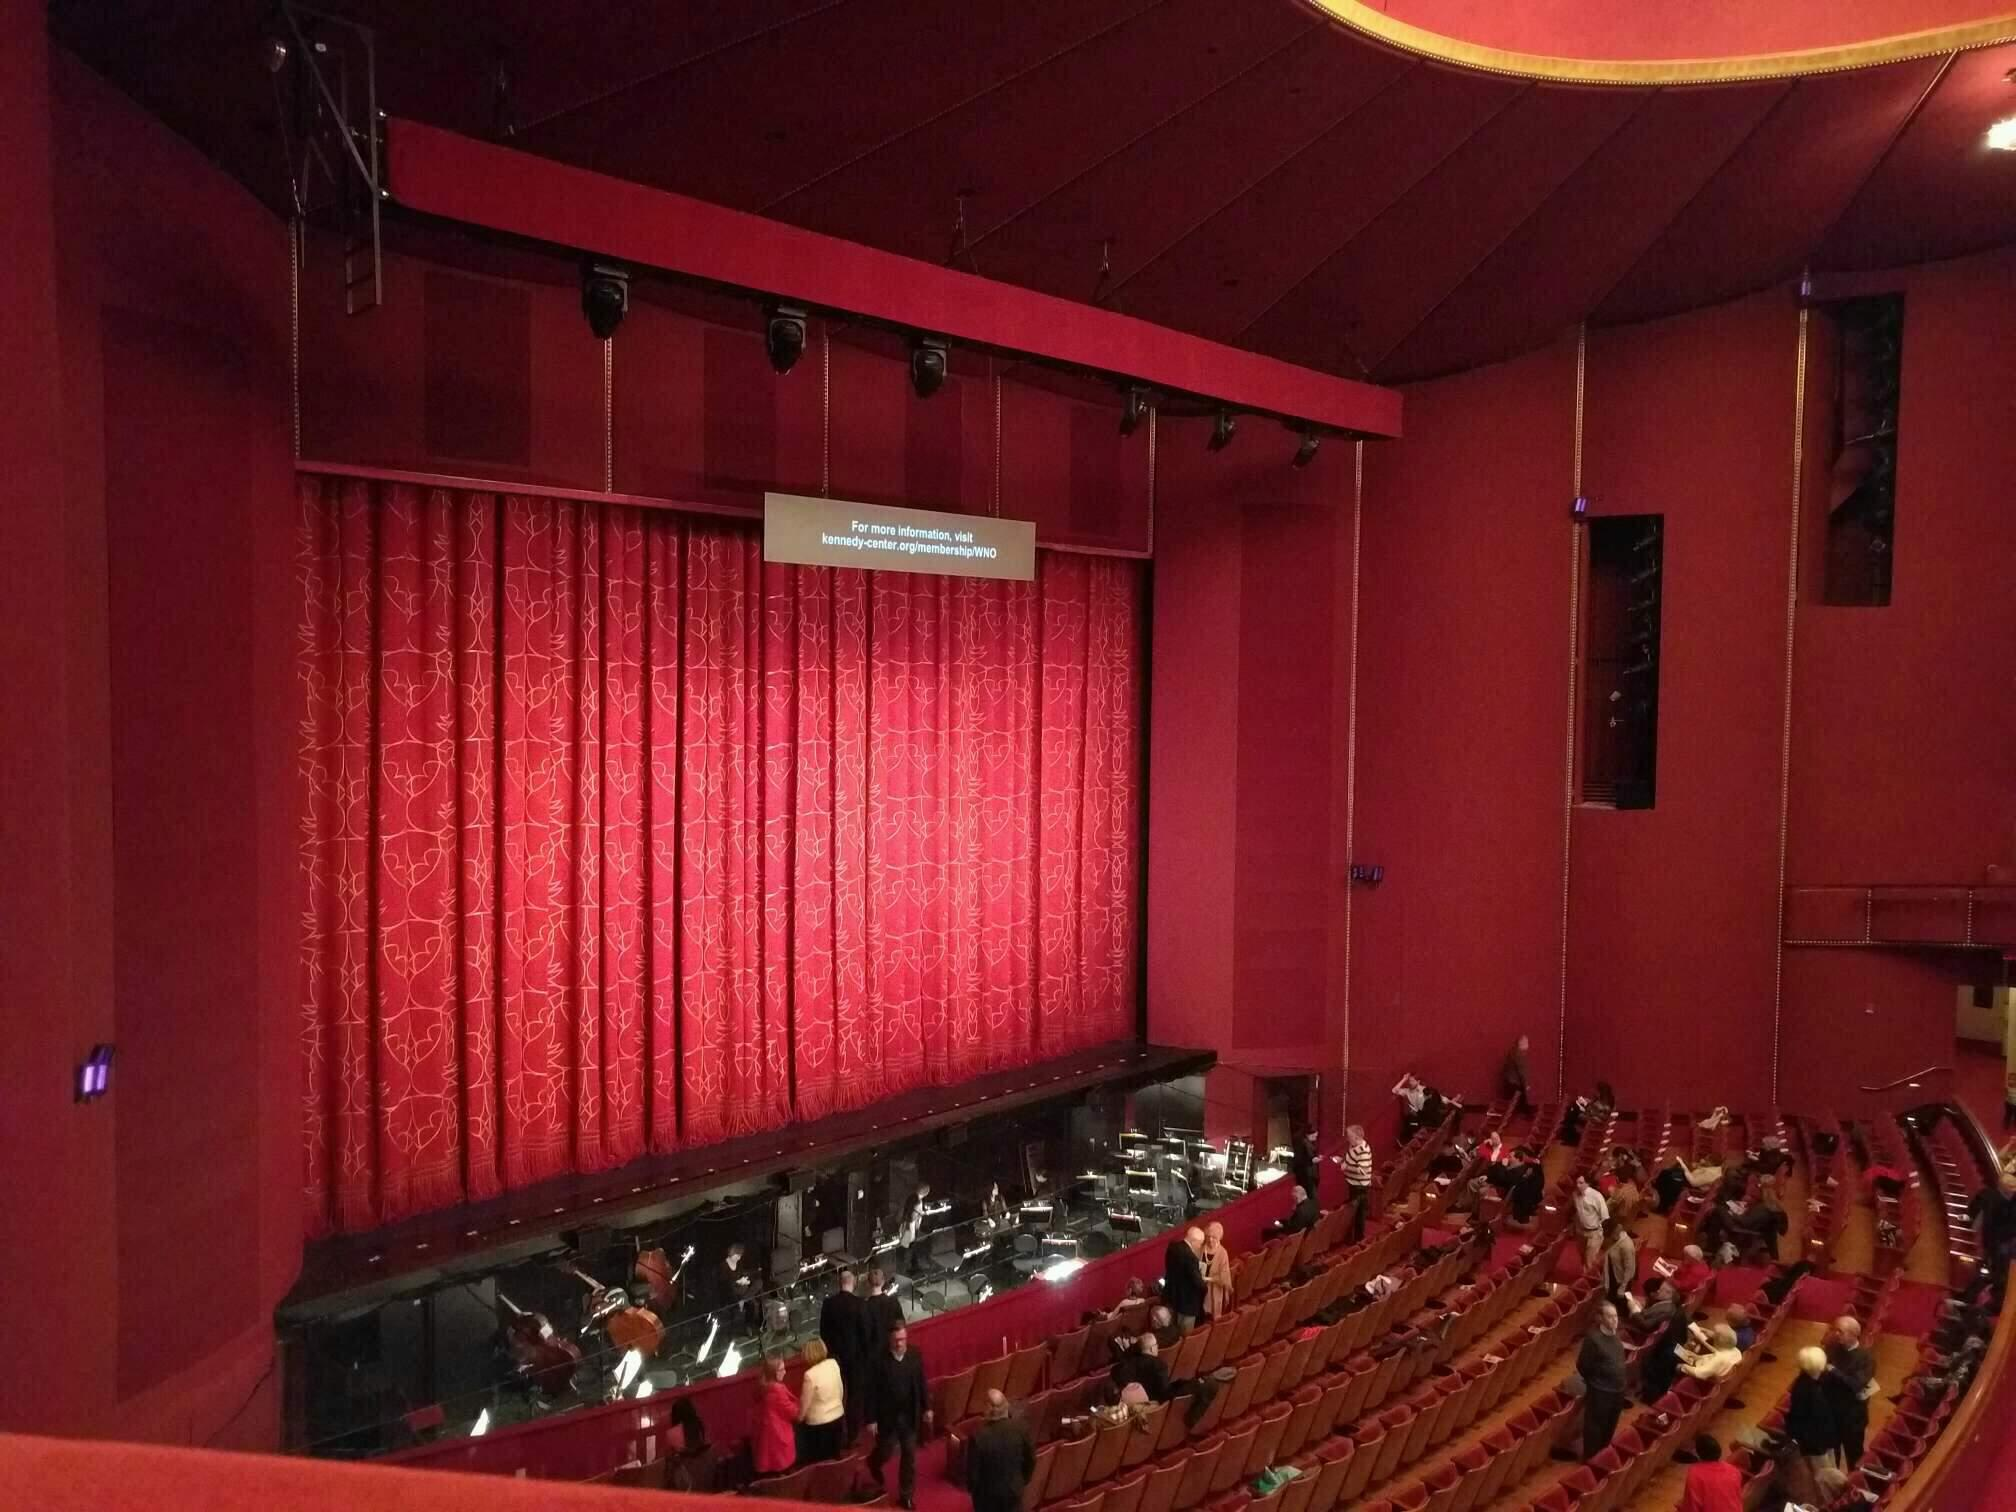 The Kennedy Center Opera House Section 1st tier Row a Seat 9